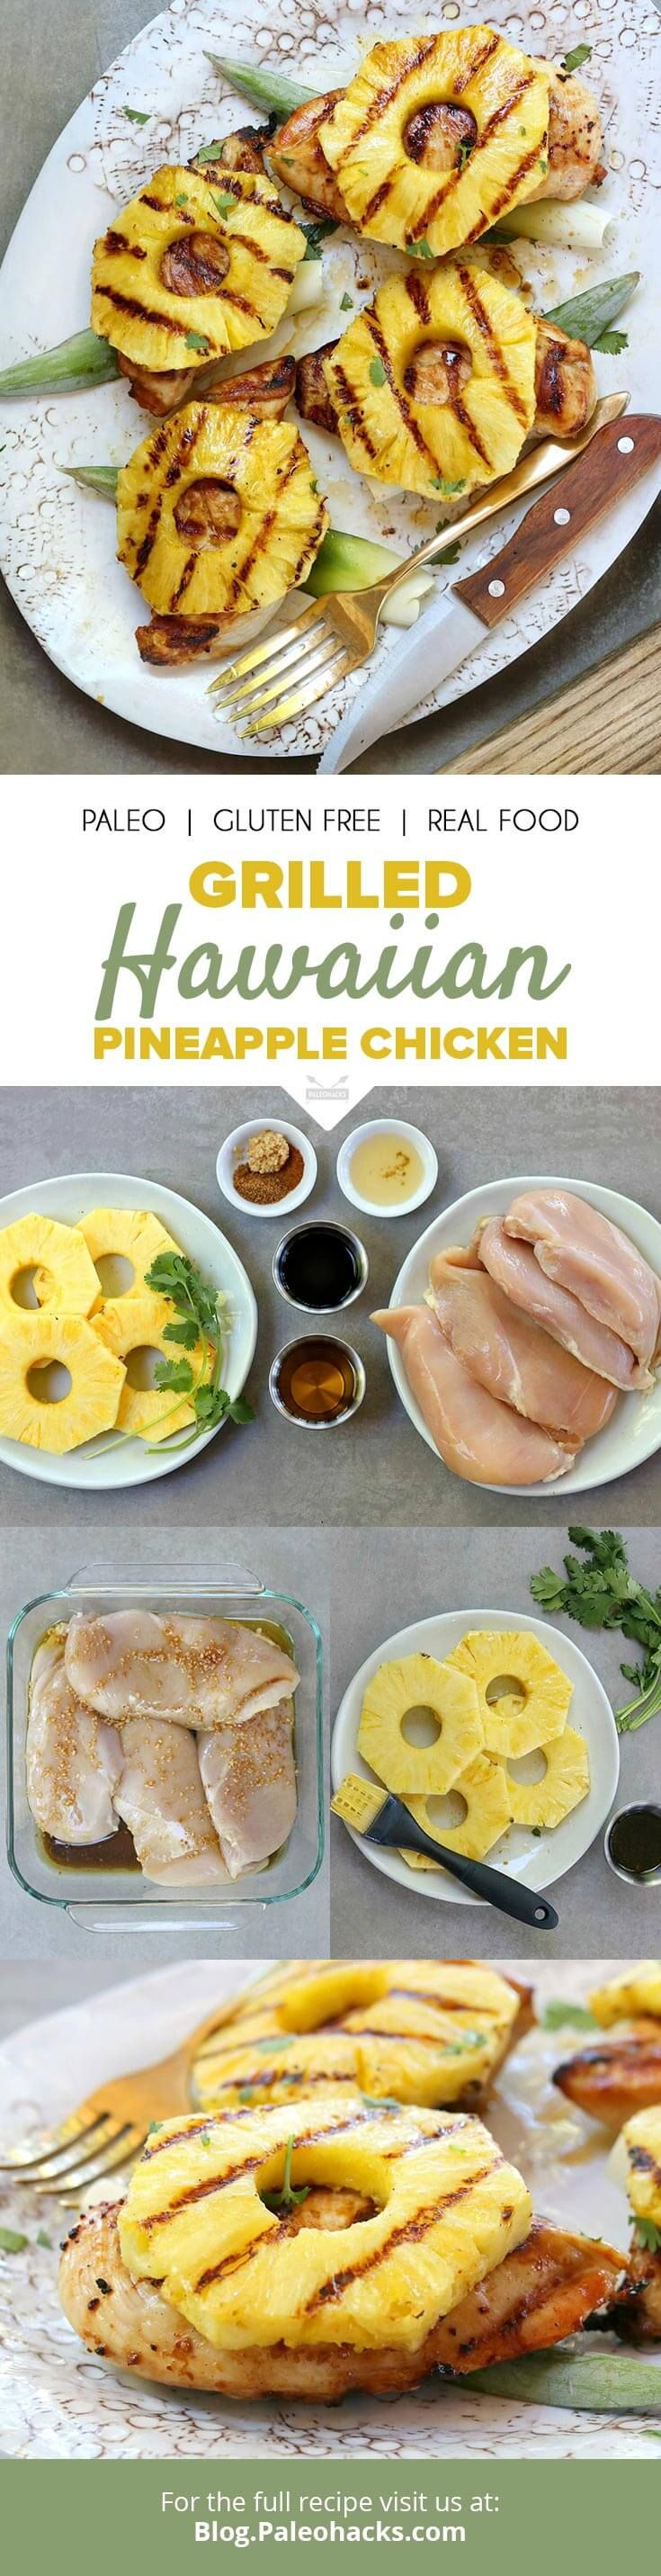 Whisk your senses away with the sweet flavors of pineapple over juicy grilled chicken. Get the recipe here: http://paleo.co/pineapplechuck